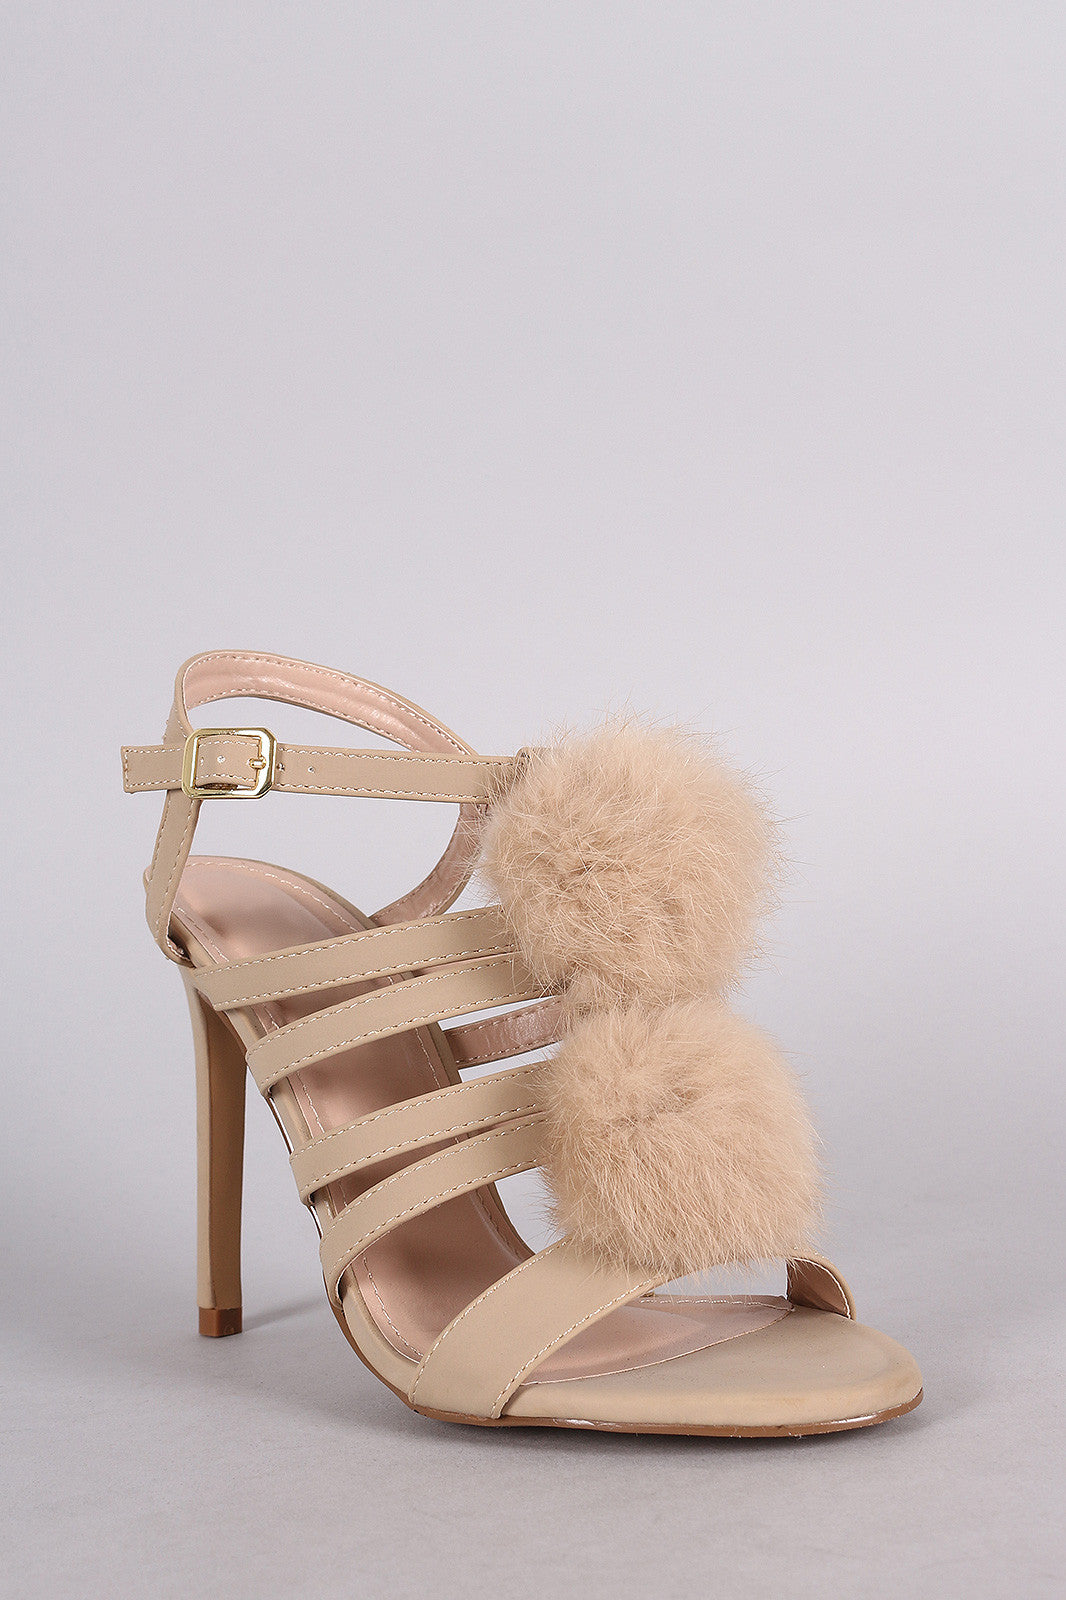 Shoe Republic LA Nubuck Strappy Pom Pom Stiletto Heel - Thick 'N' Curvy Shop - 5